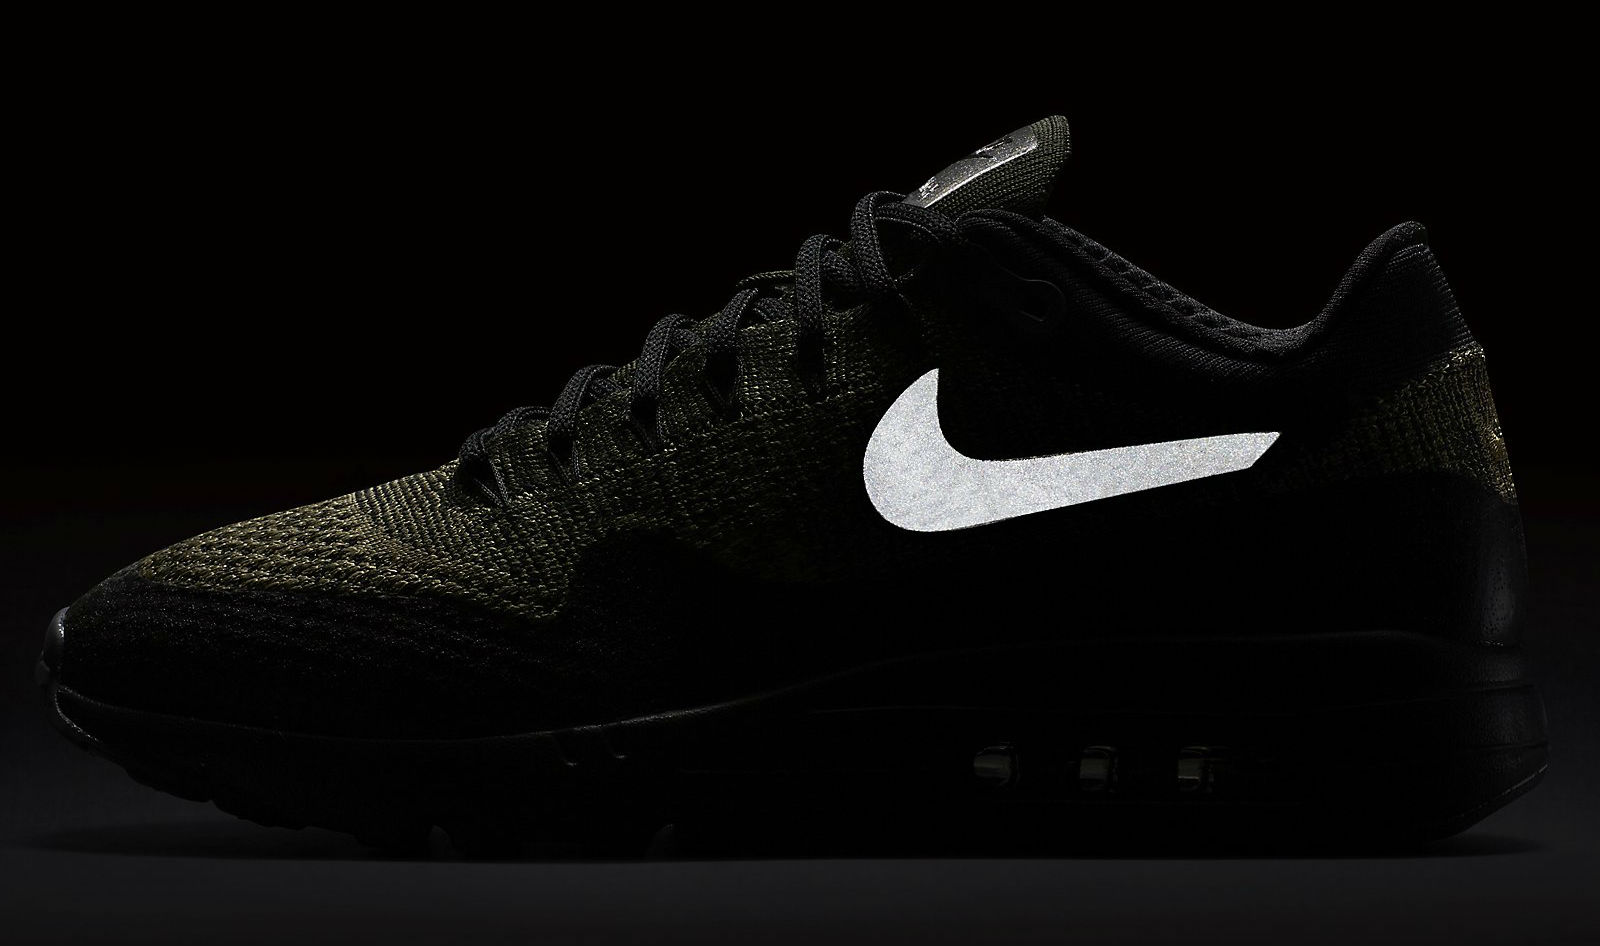 Nike Air Max 1 Ultra Flyknit Neutral Olive/Black-Sequoia Reflective 856958-203